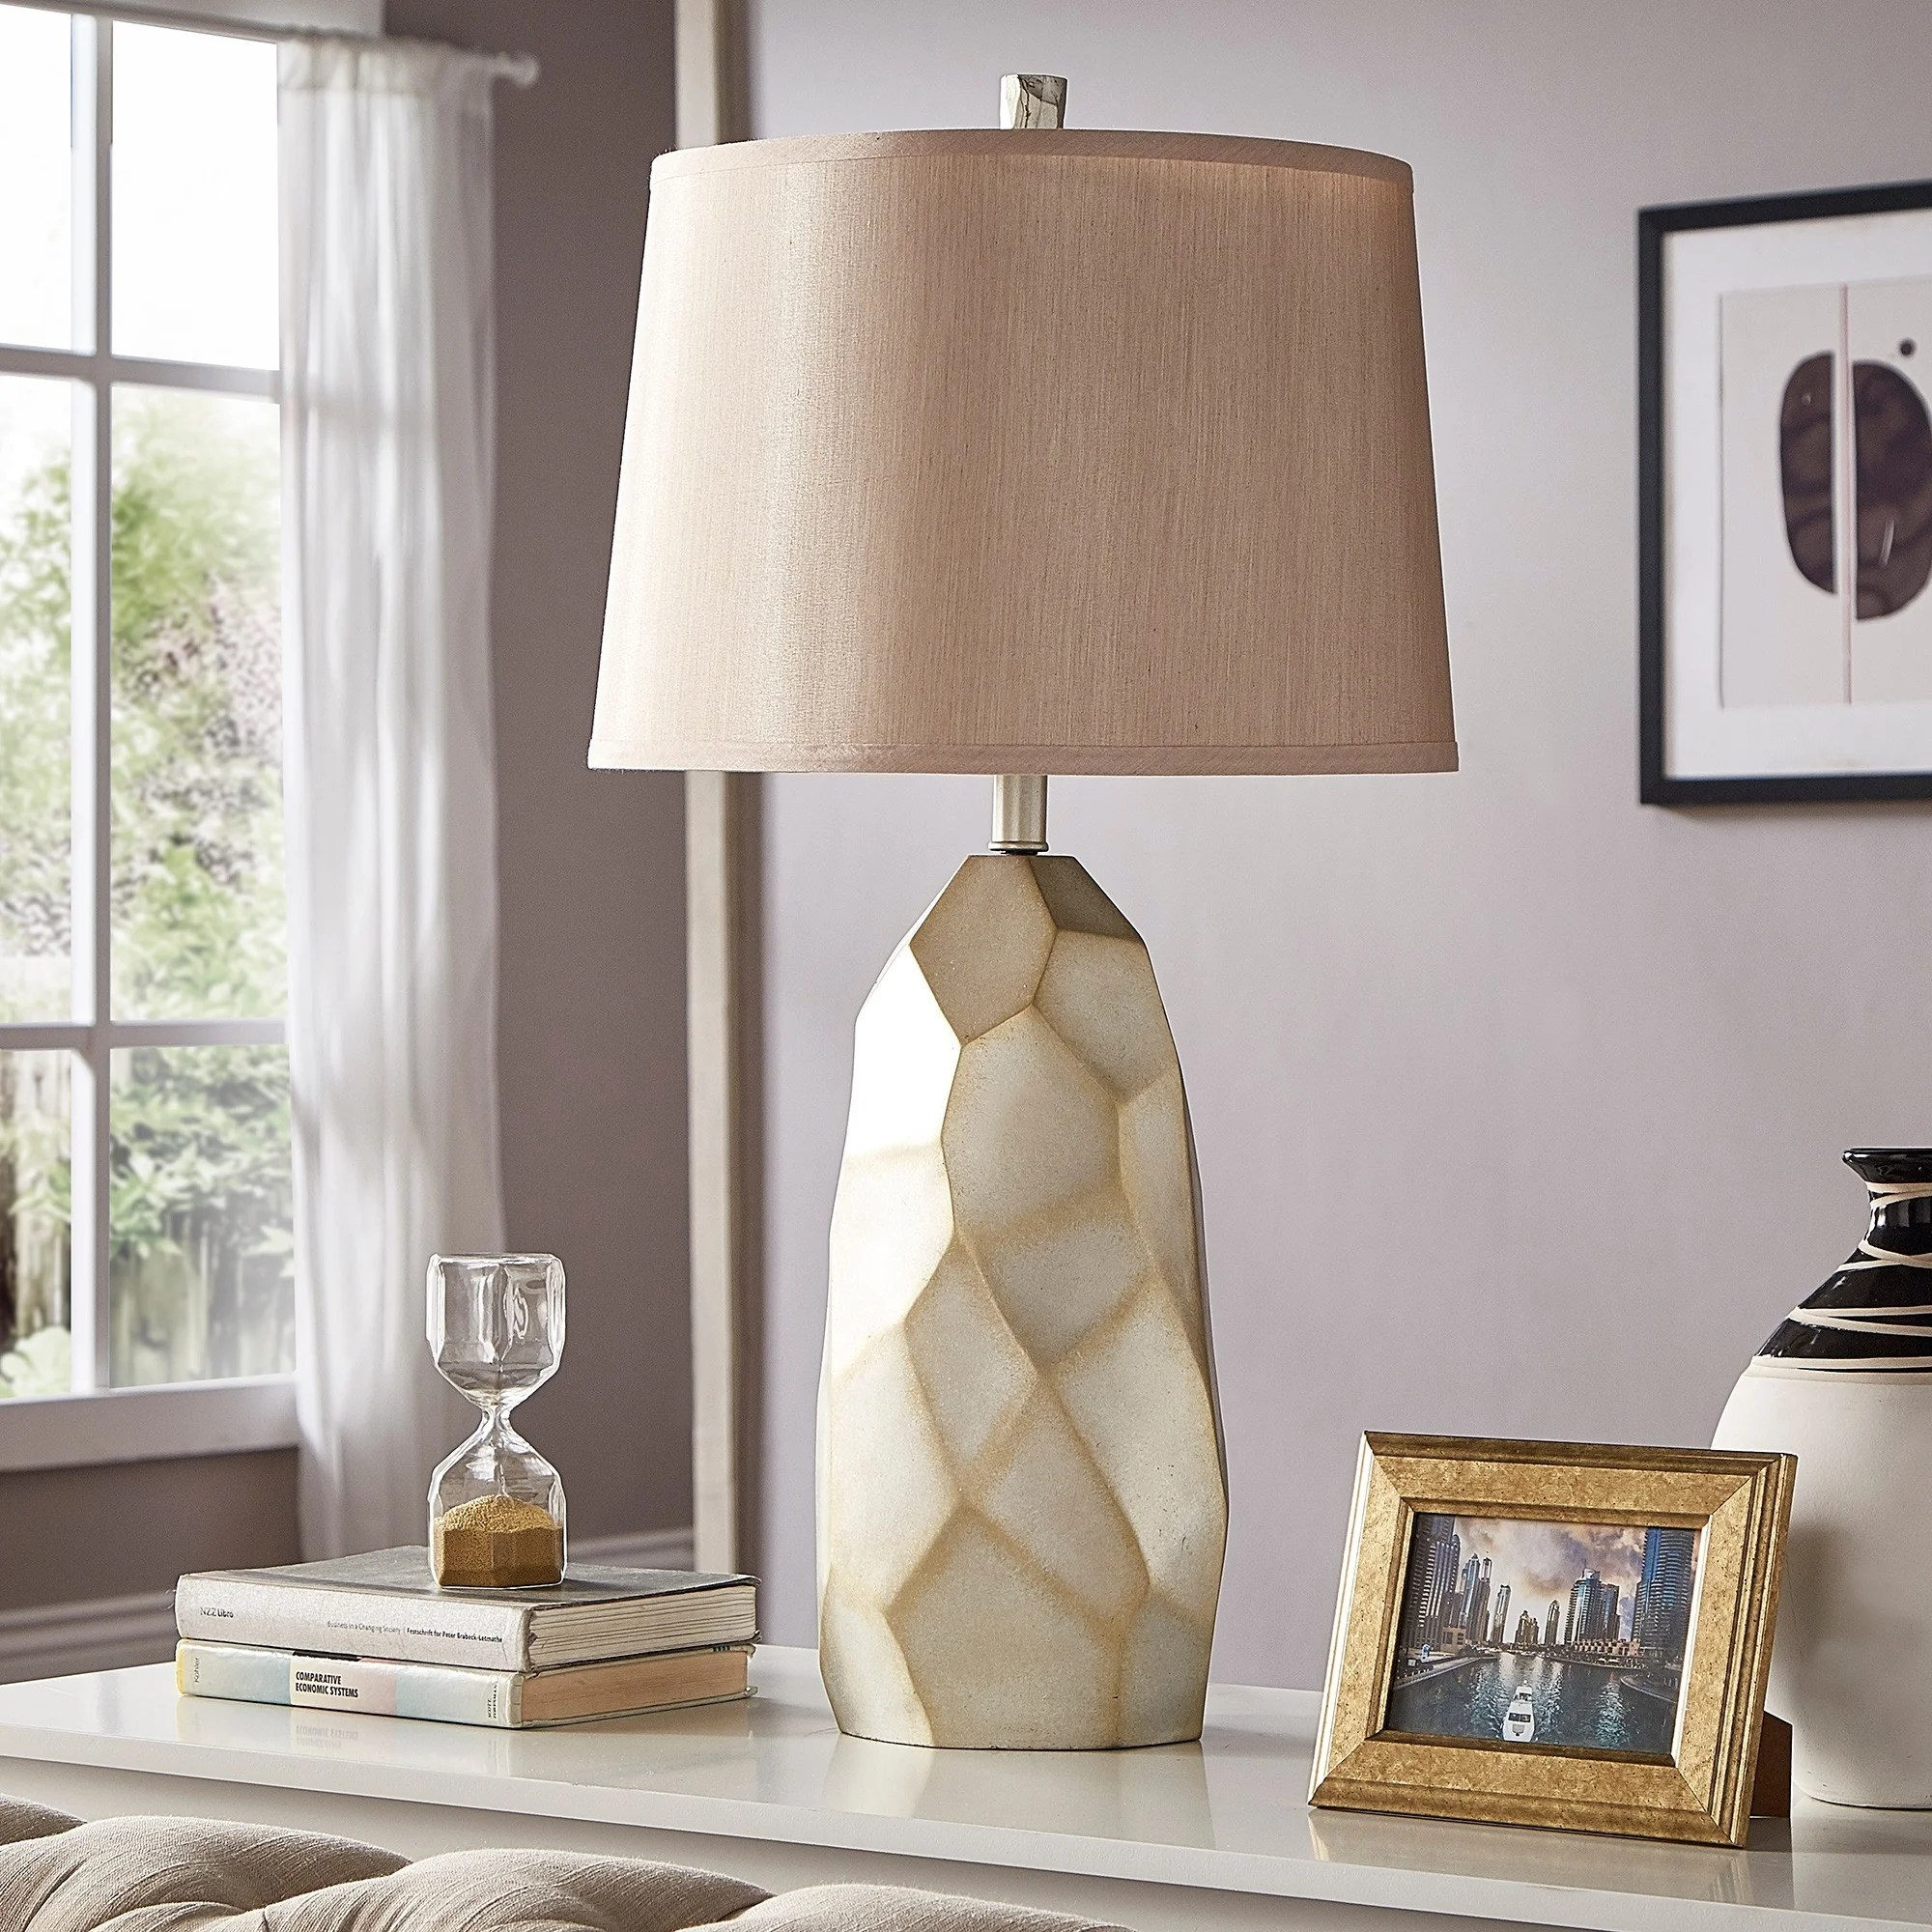 Ultra Modern Table Lamp Details About Jacqueline Faceted Table Lamp By Inspire Q Modern